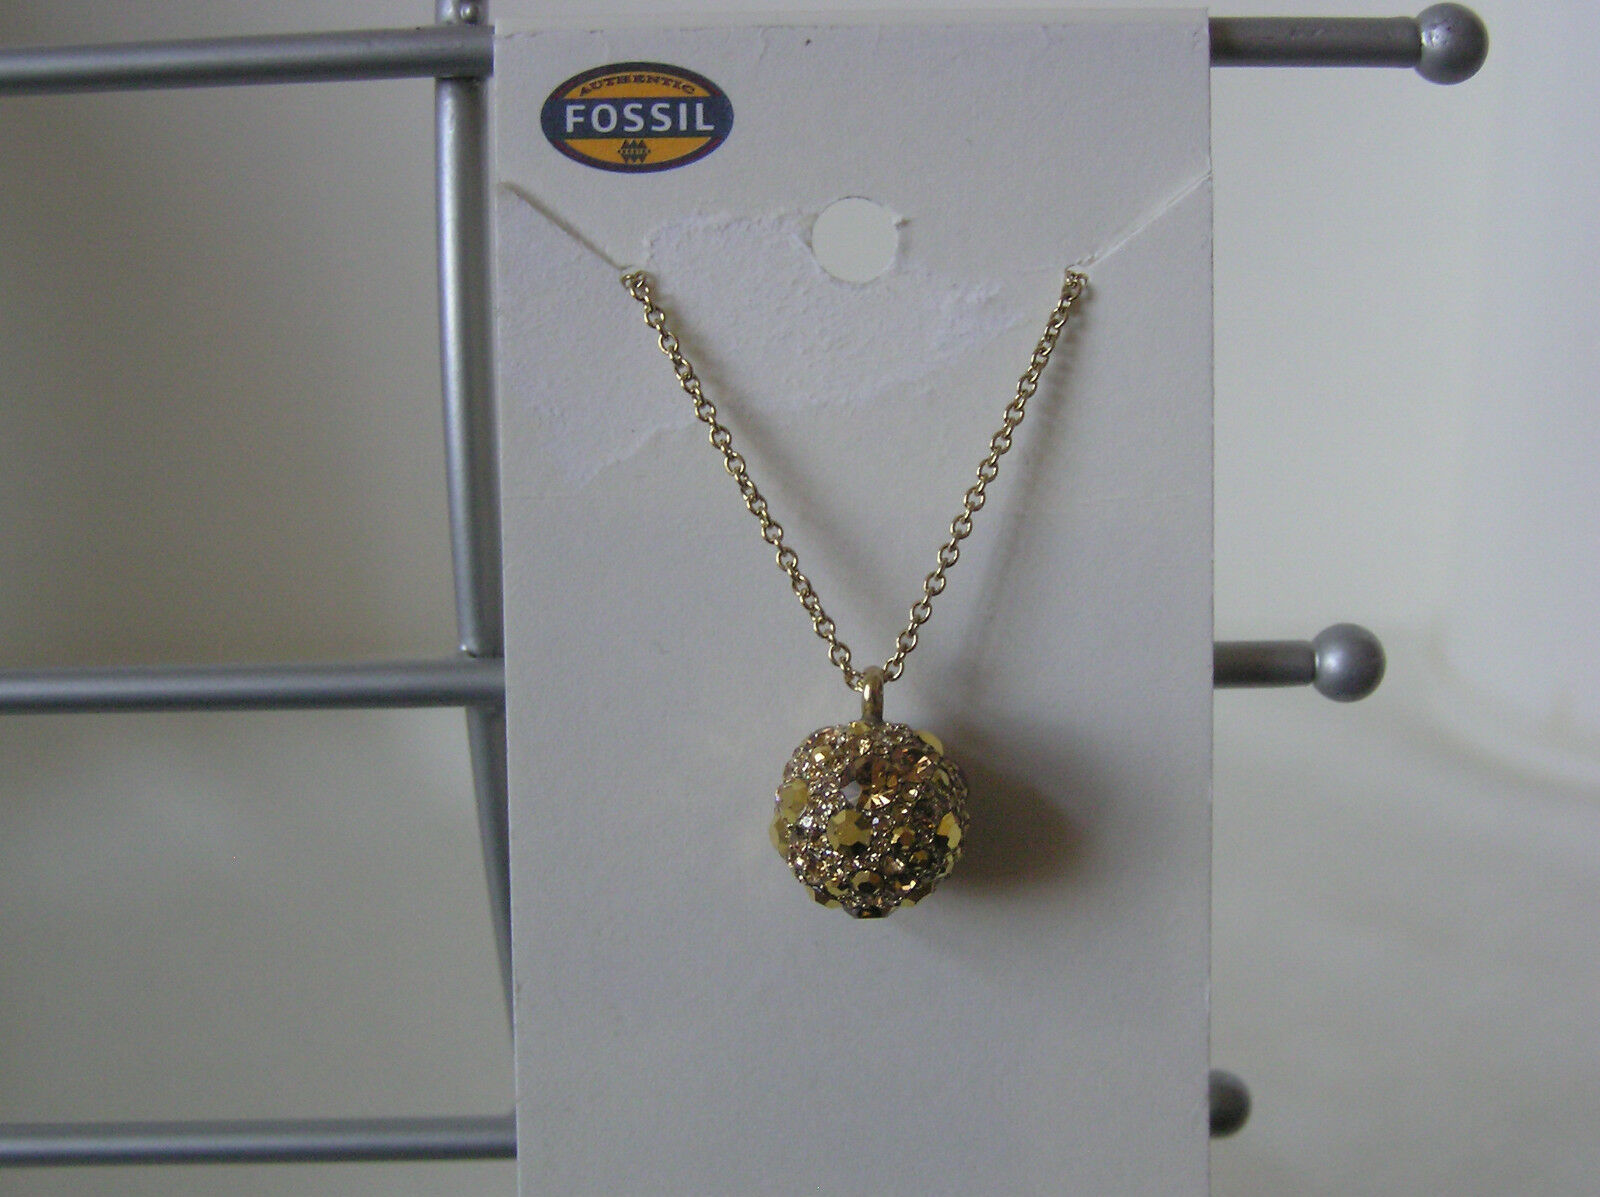 Fossil Brand gold Tone Stainless Steel Starry Night Pave Pendant